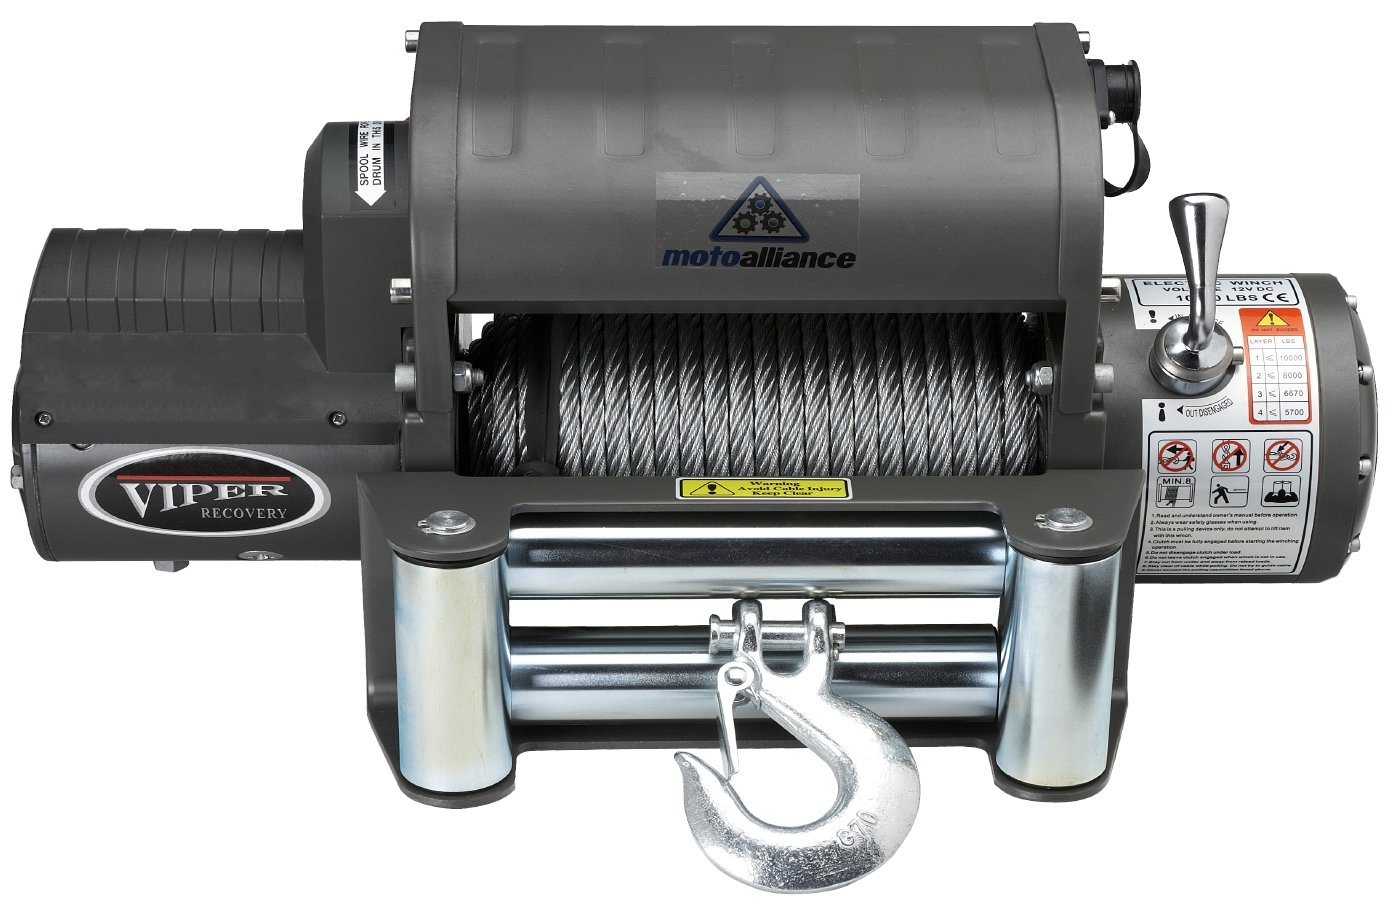 VIPER Winch 12000lb, Steel cable, wireless remote, integrated contactor